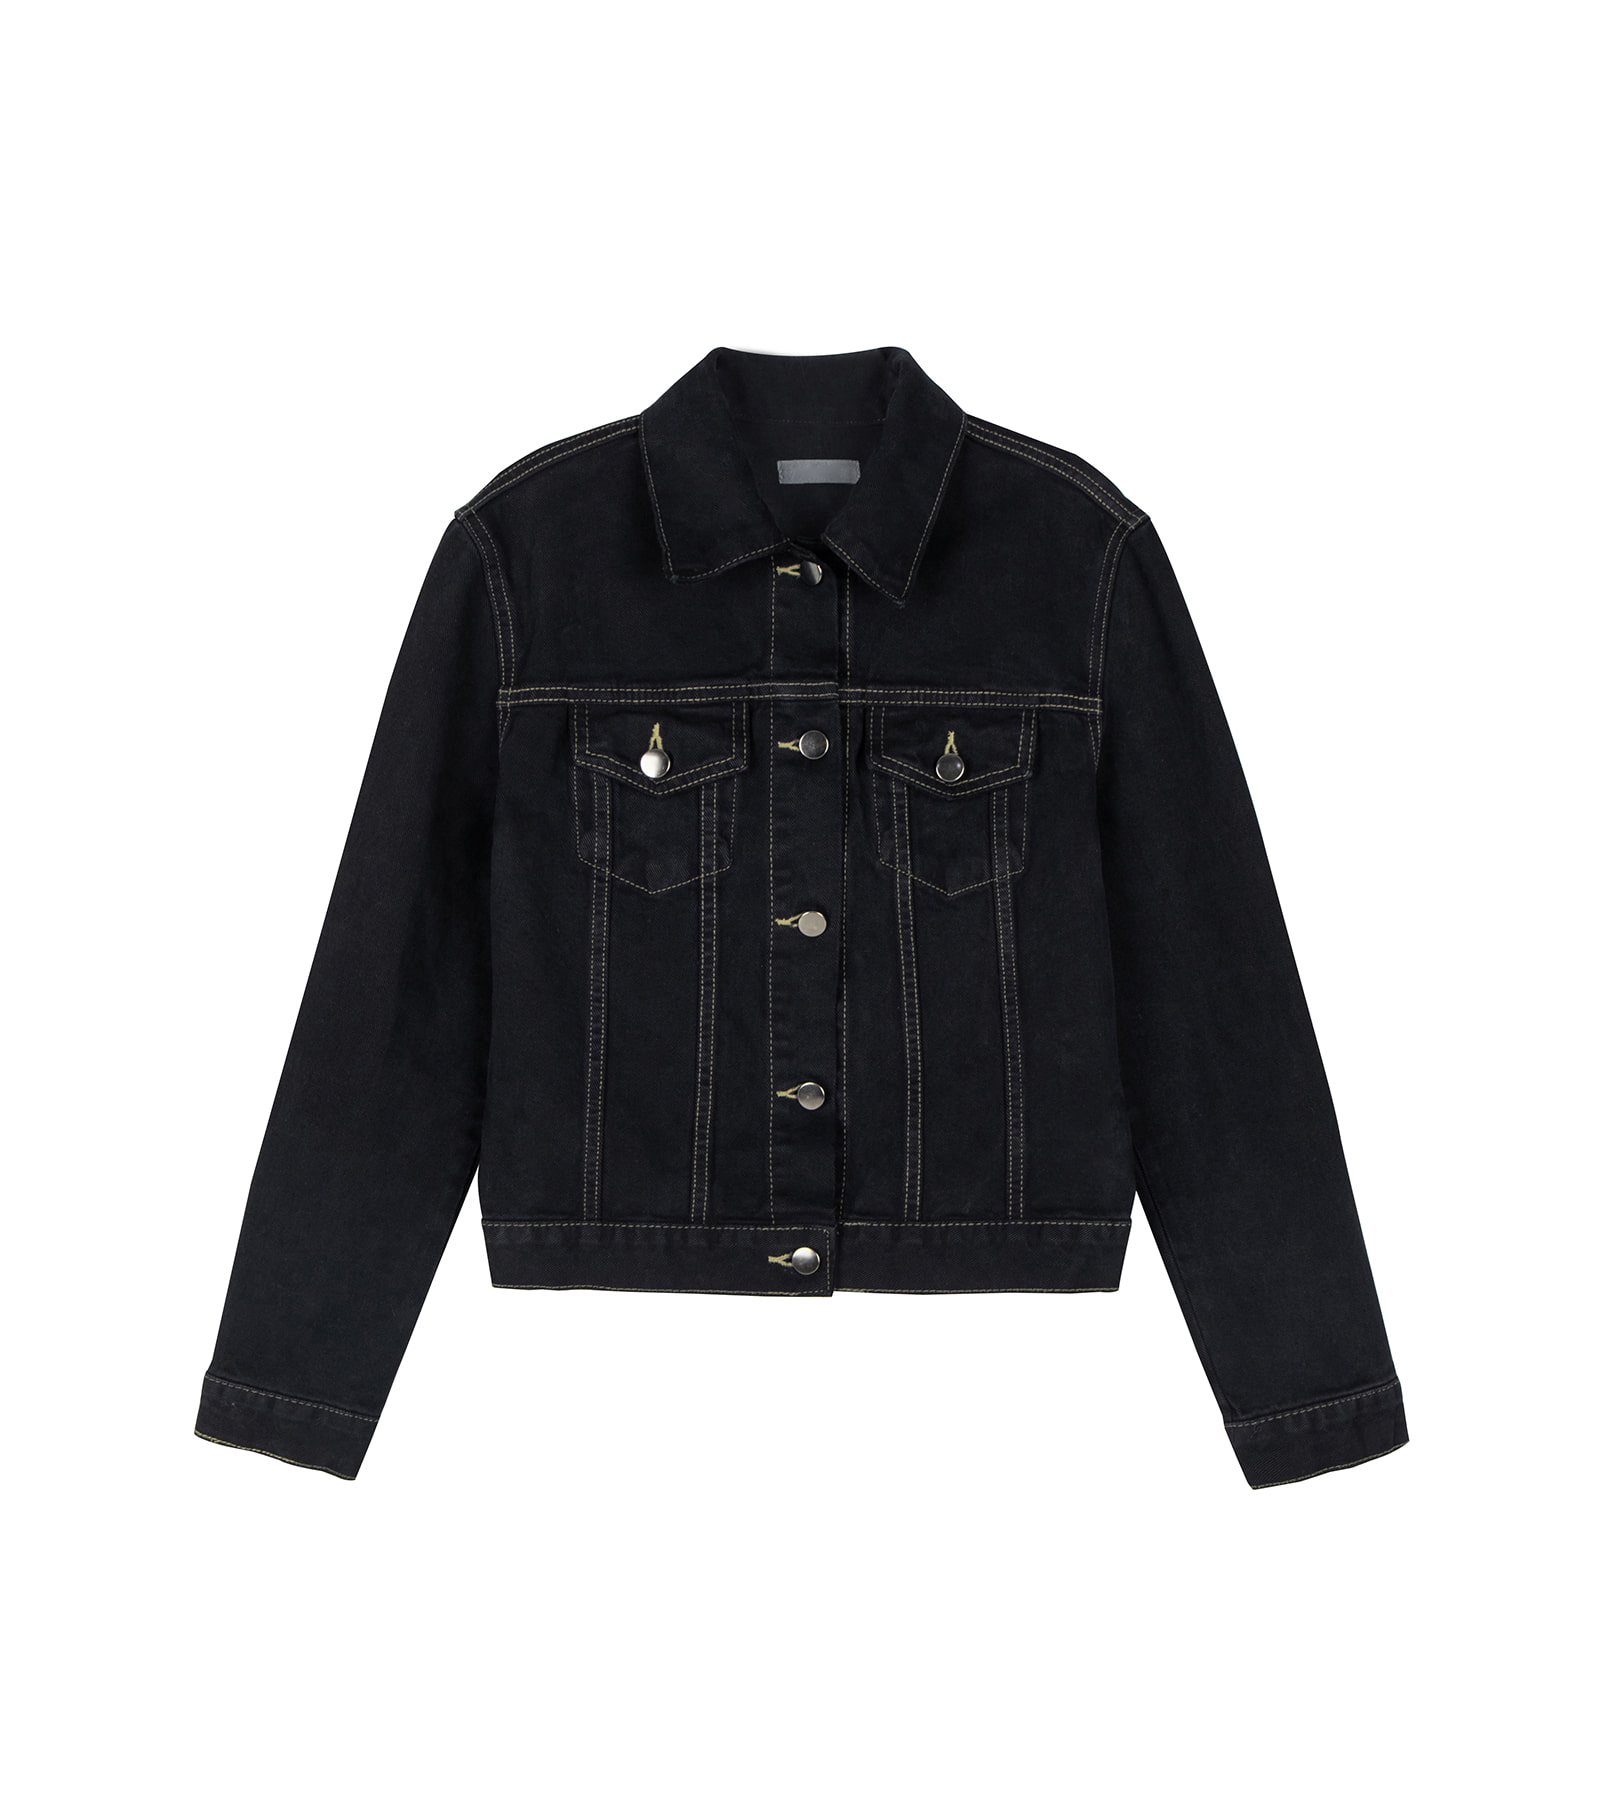 Autumn standard denim jacket